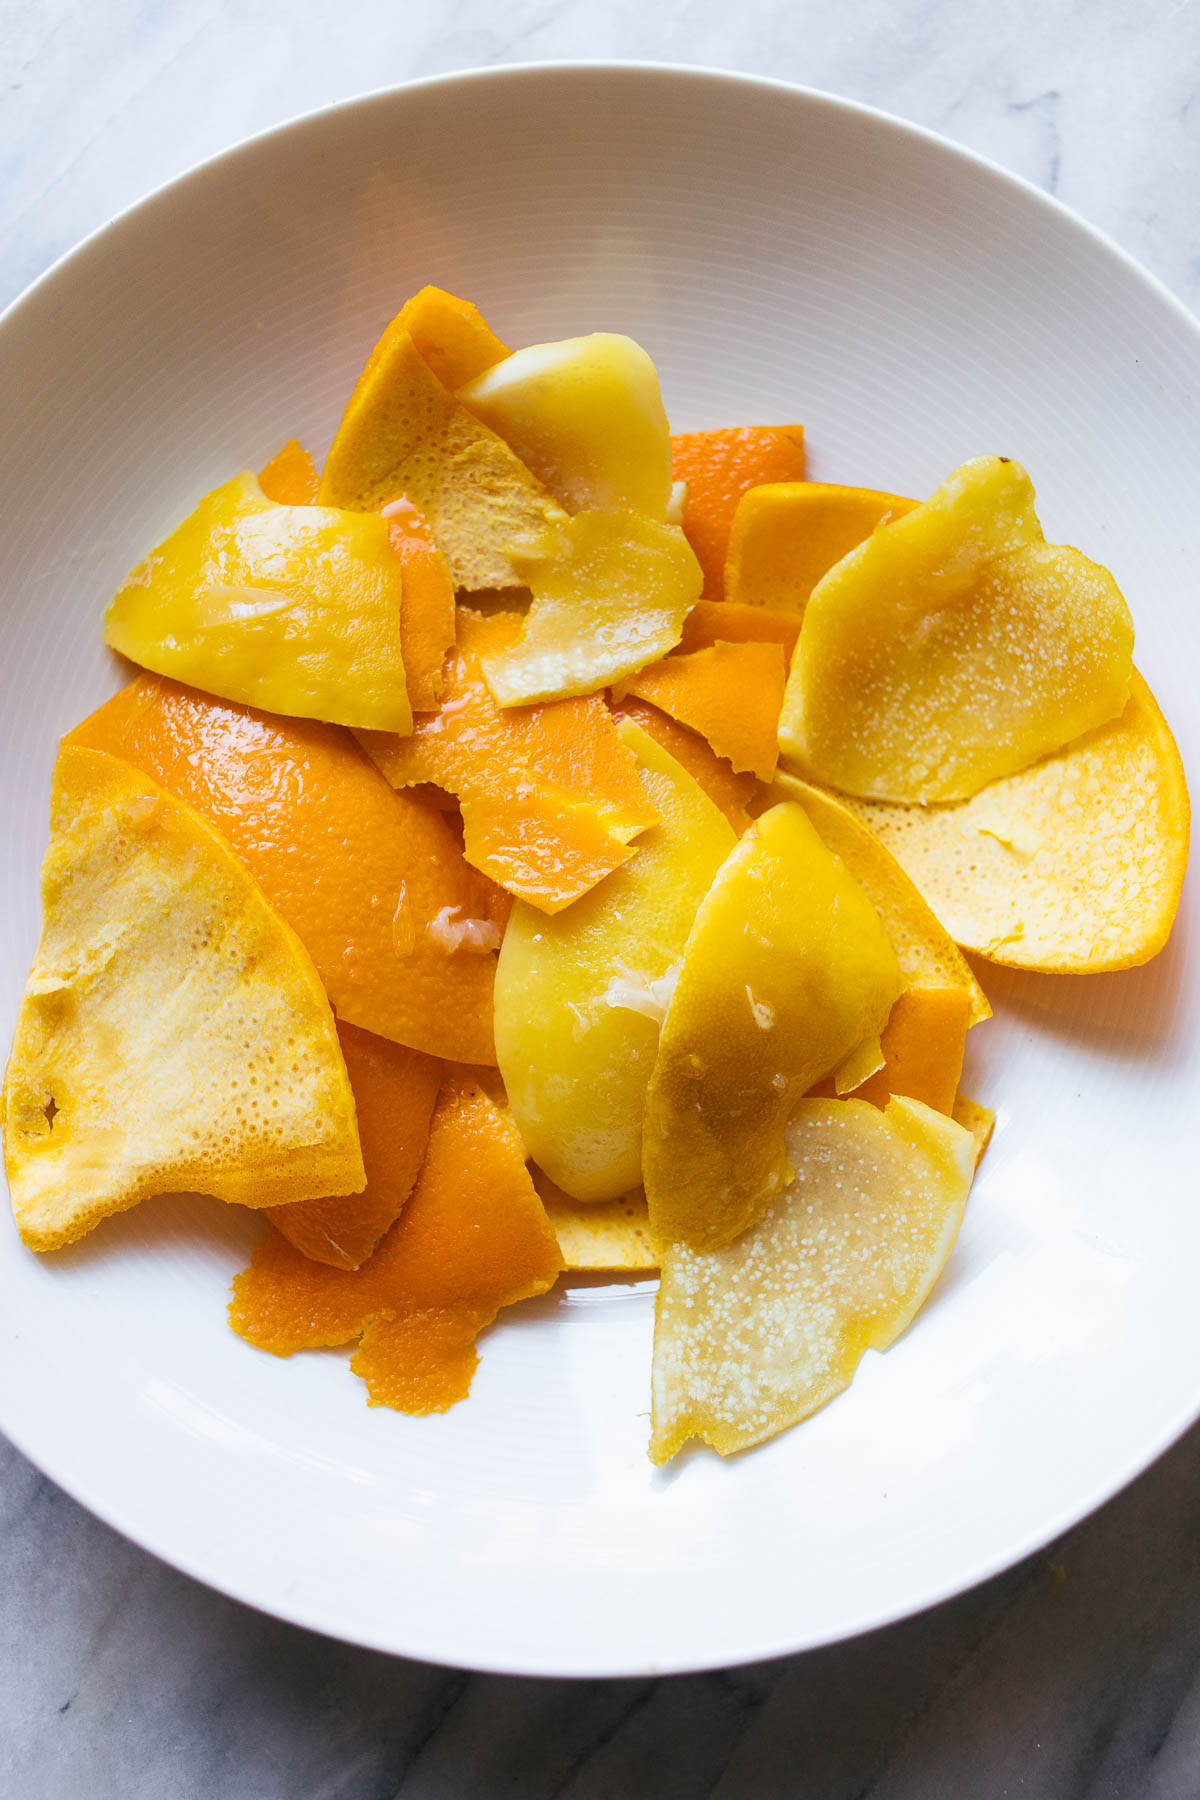 Candied orange and lemon peel on a white plate.